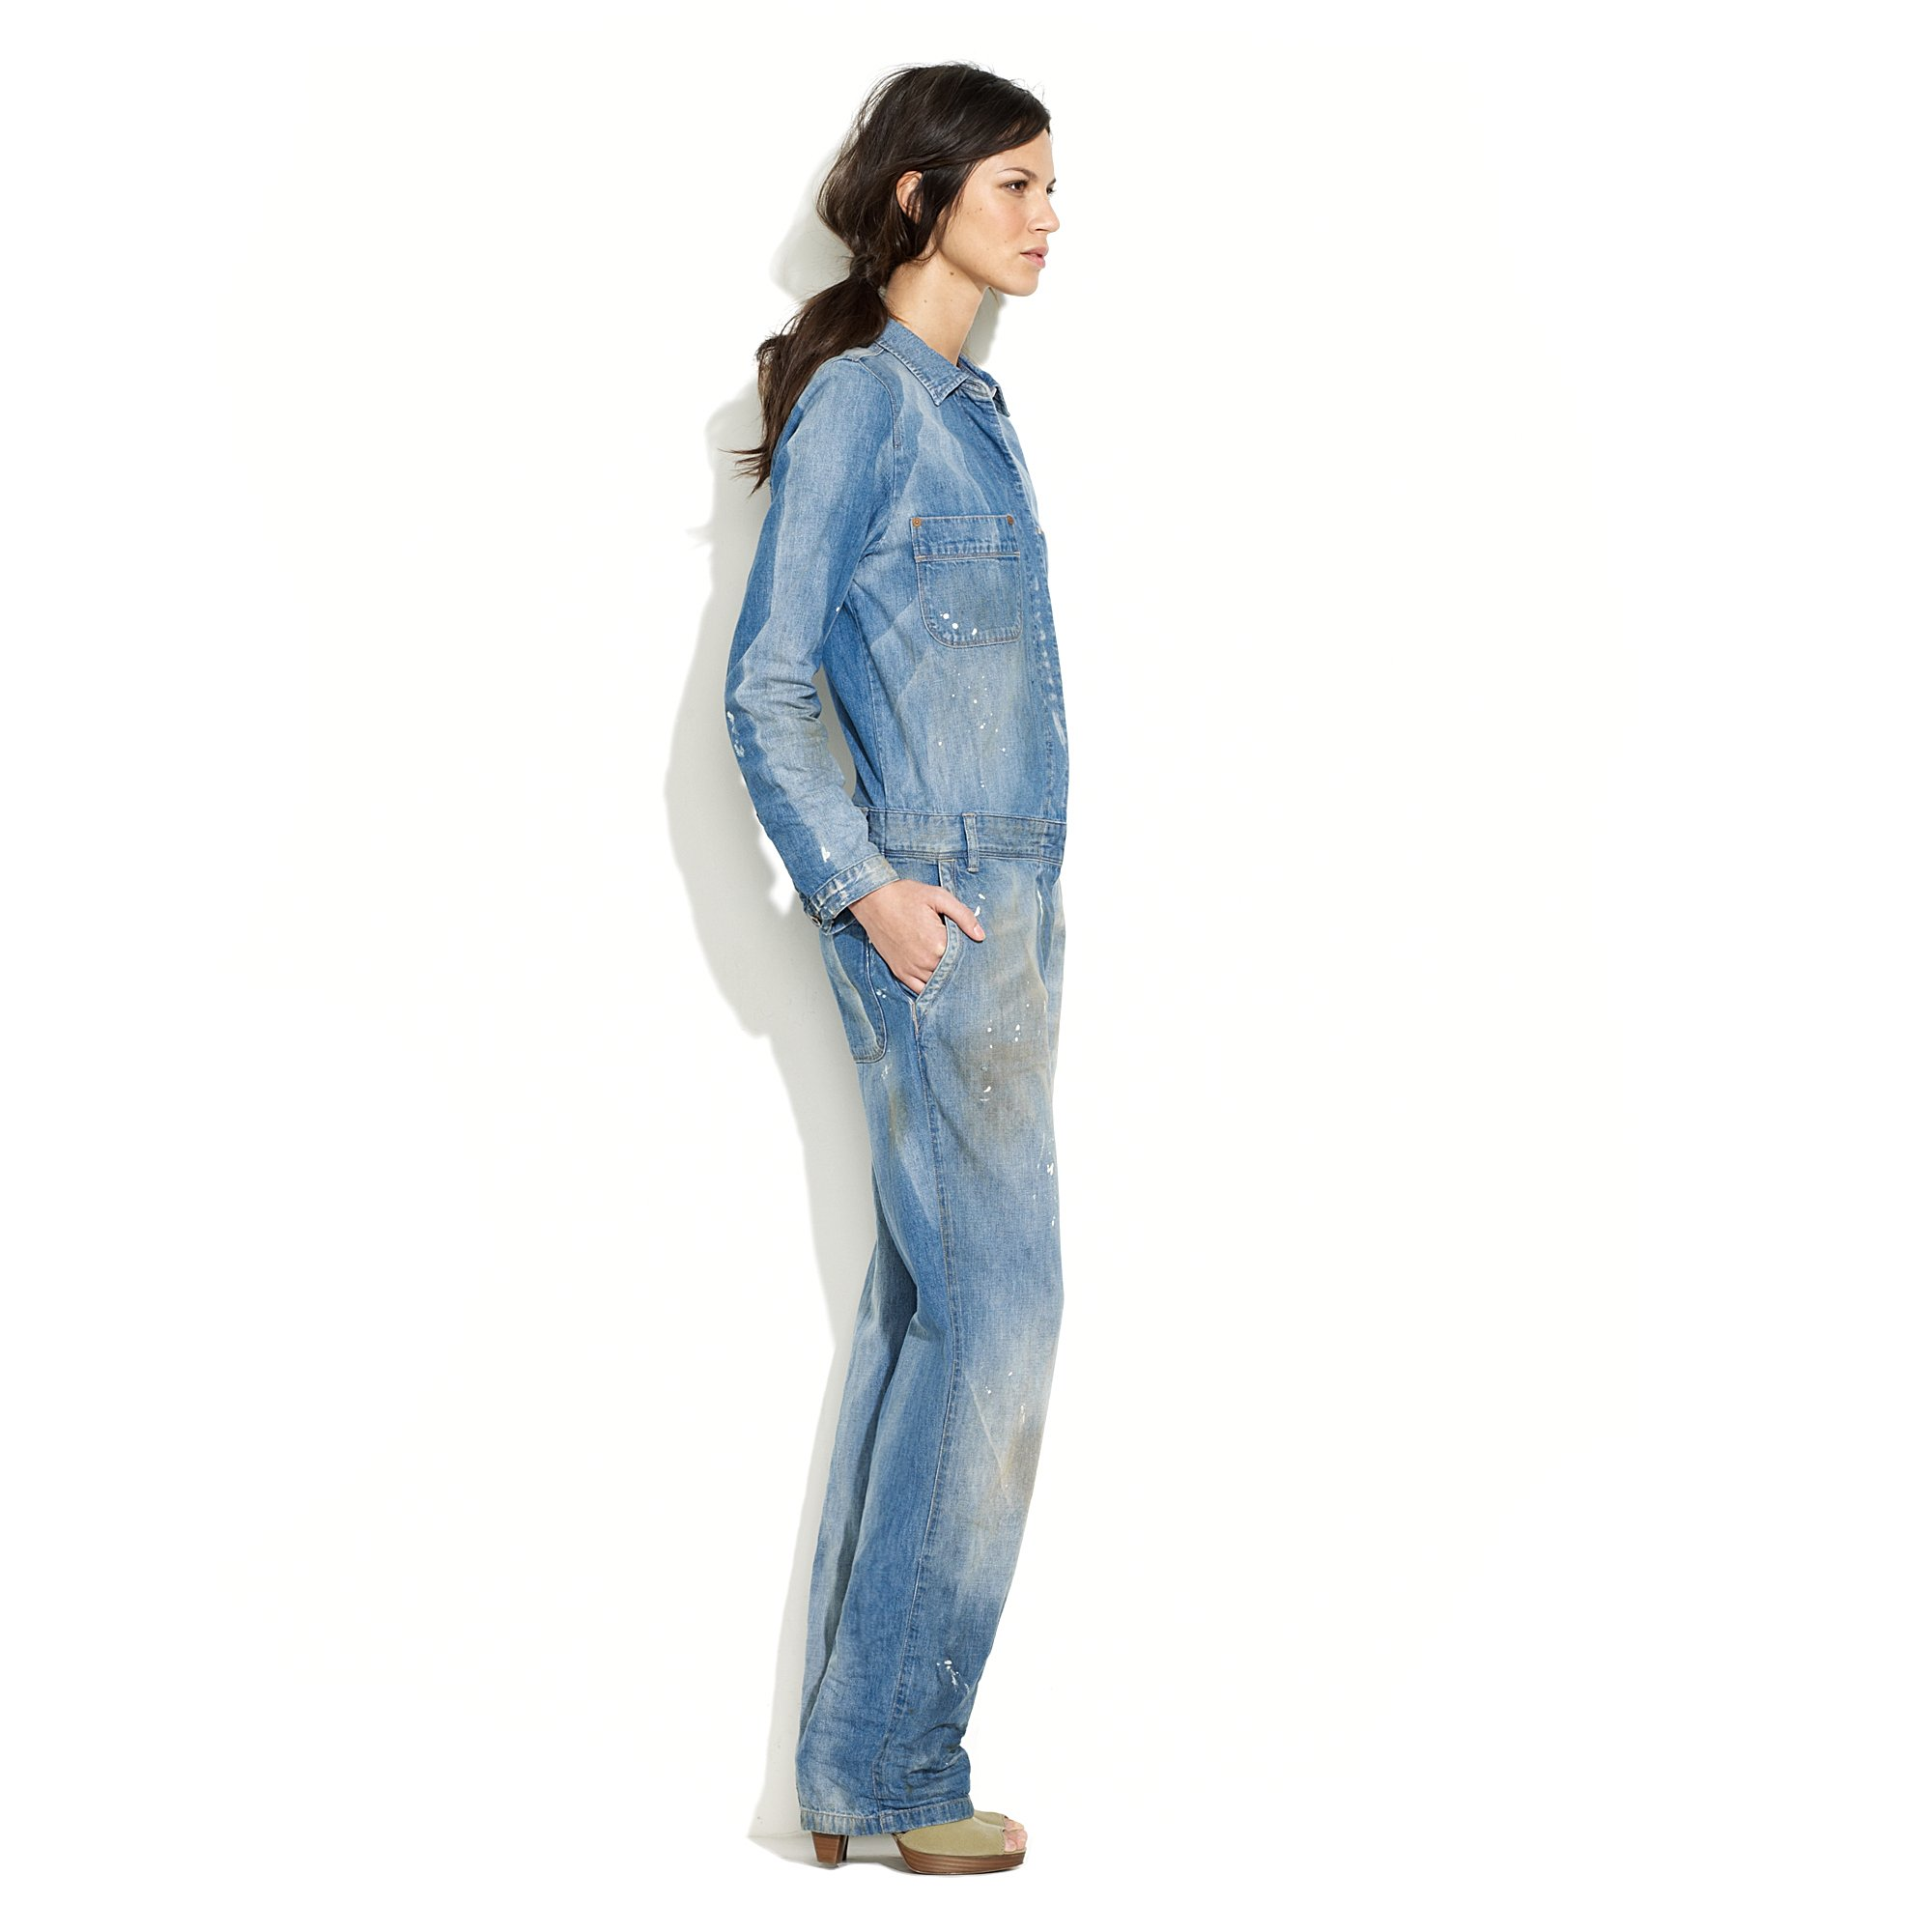 3edf1a57f5c Lyst - Madewell Heritage Premium Worksuit in Bighorn Wash in Blue